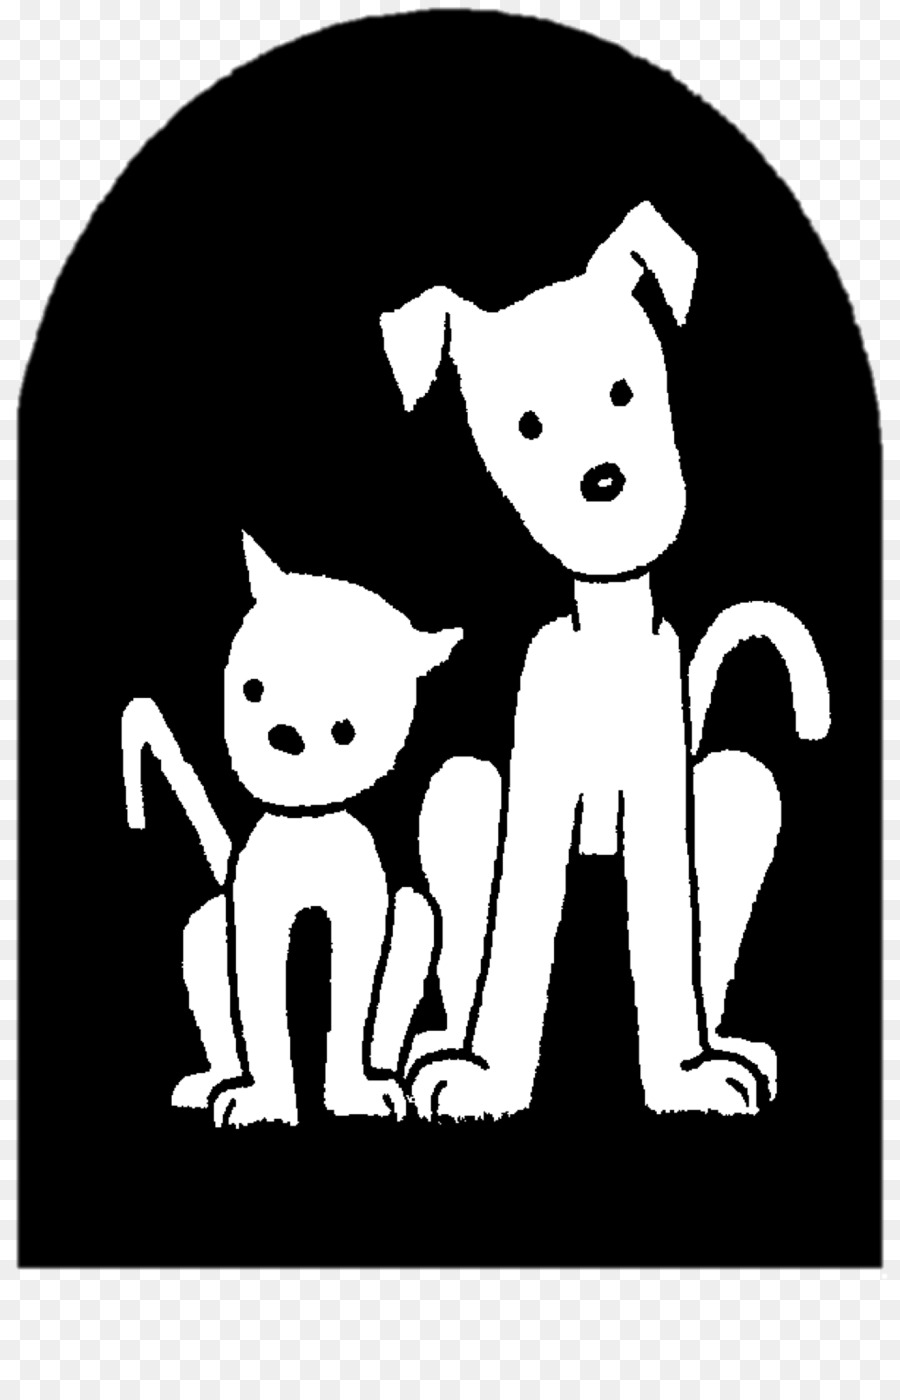 dog cat animal shelter humane society clip art society cliparts rh kisspng com Healthy Animal Shelter Cartoon Animal Shelter